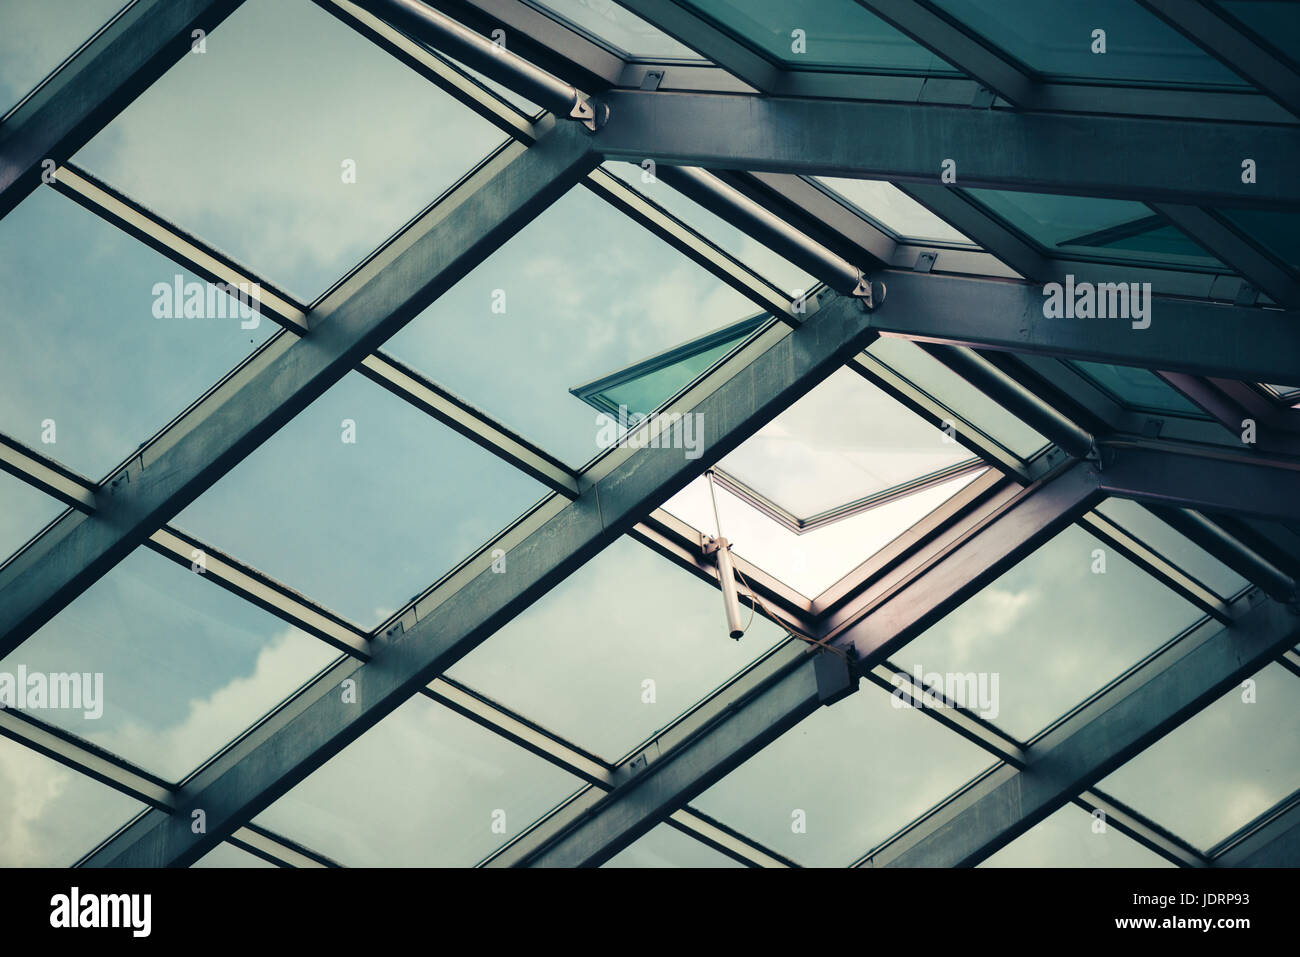 Glass Skylight Roof With Open Window Architectural